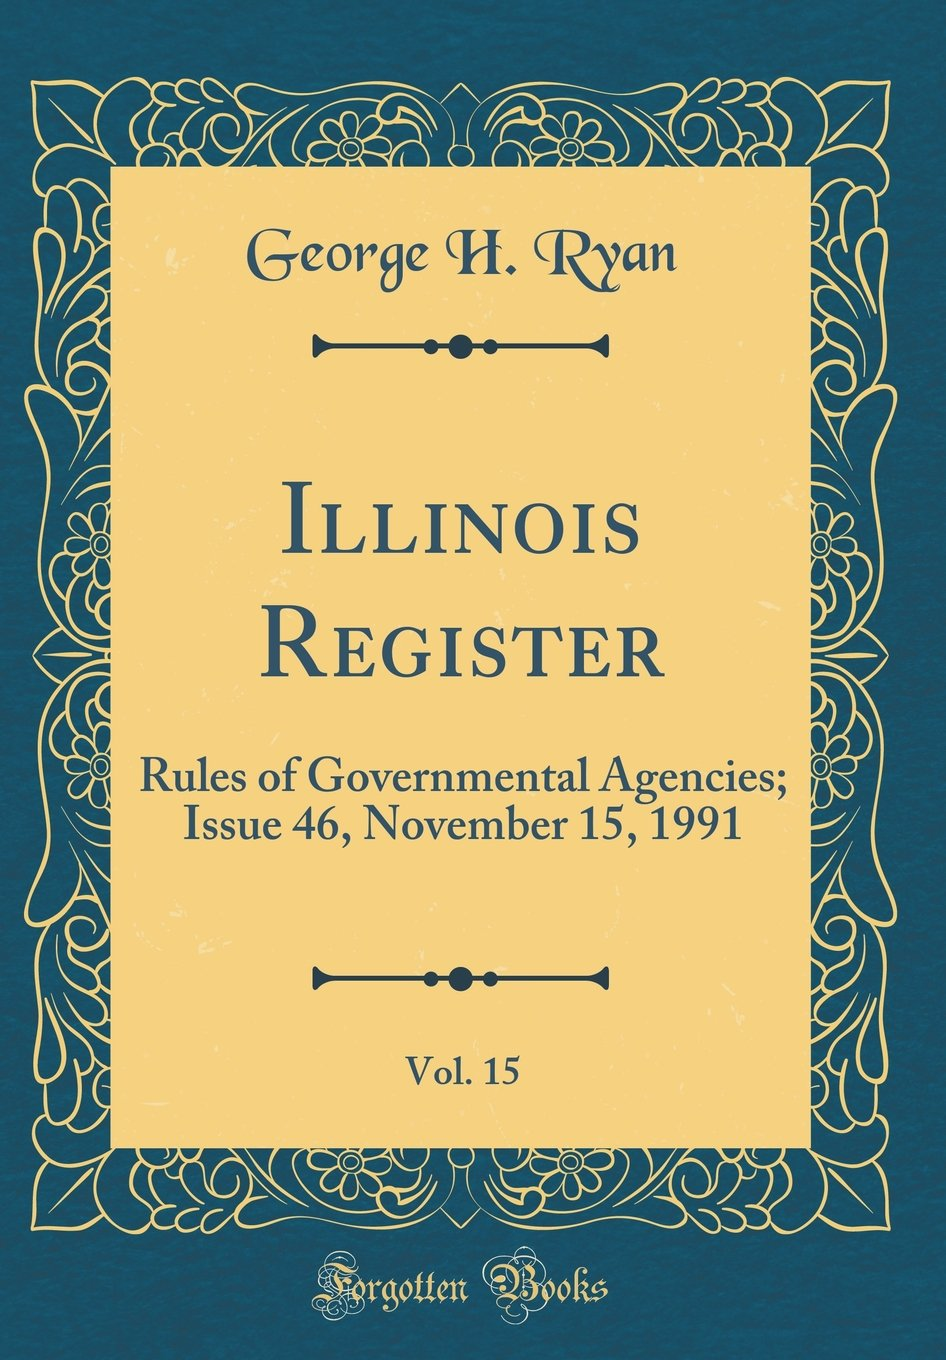 Download Illinois Register, Vol. 15: Rules of Governmental Agencies; Issue 46, November 15, 1991 (Classic Reprint) ebook